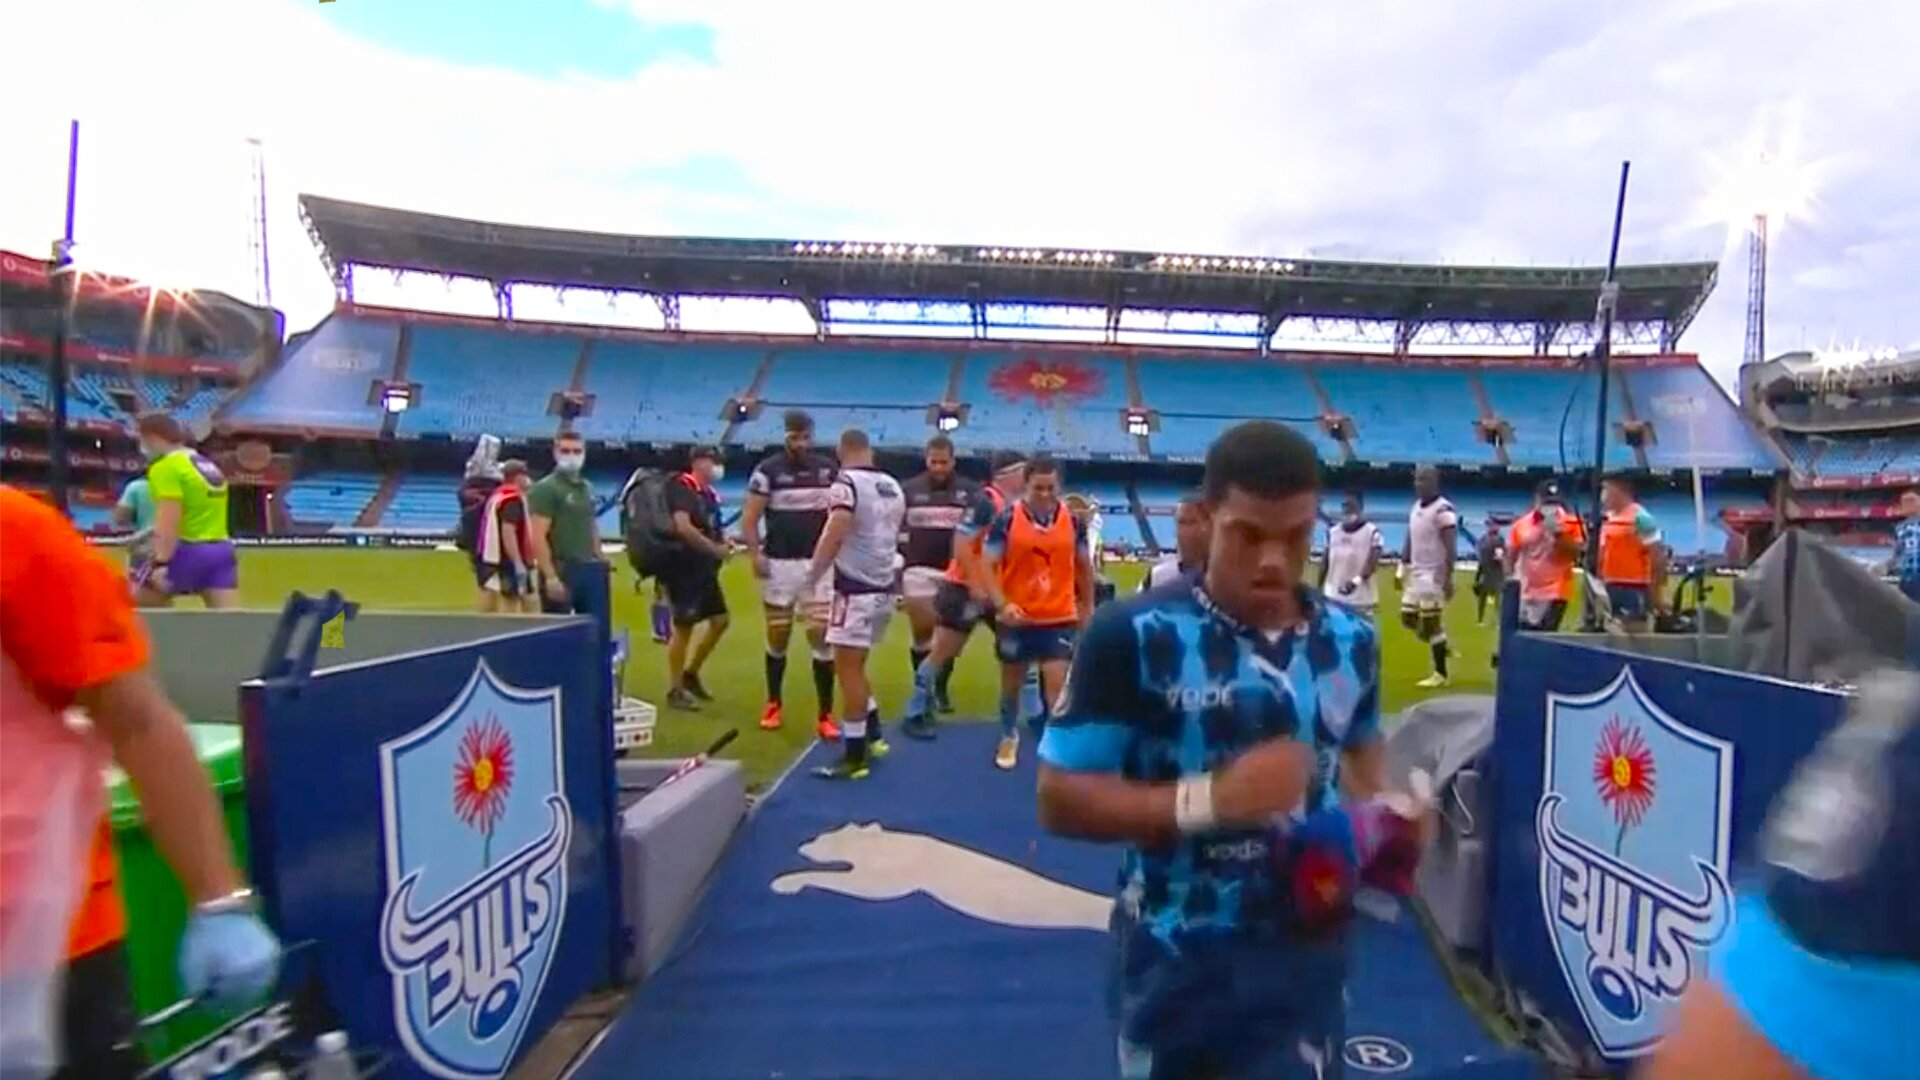 Players rushed off the field in Currie Cup final after major incident suspends play